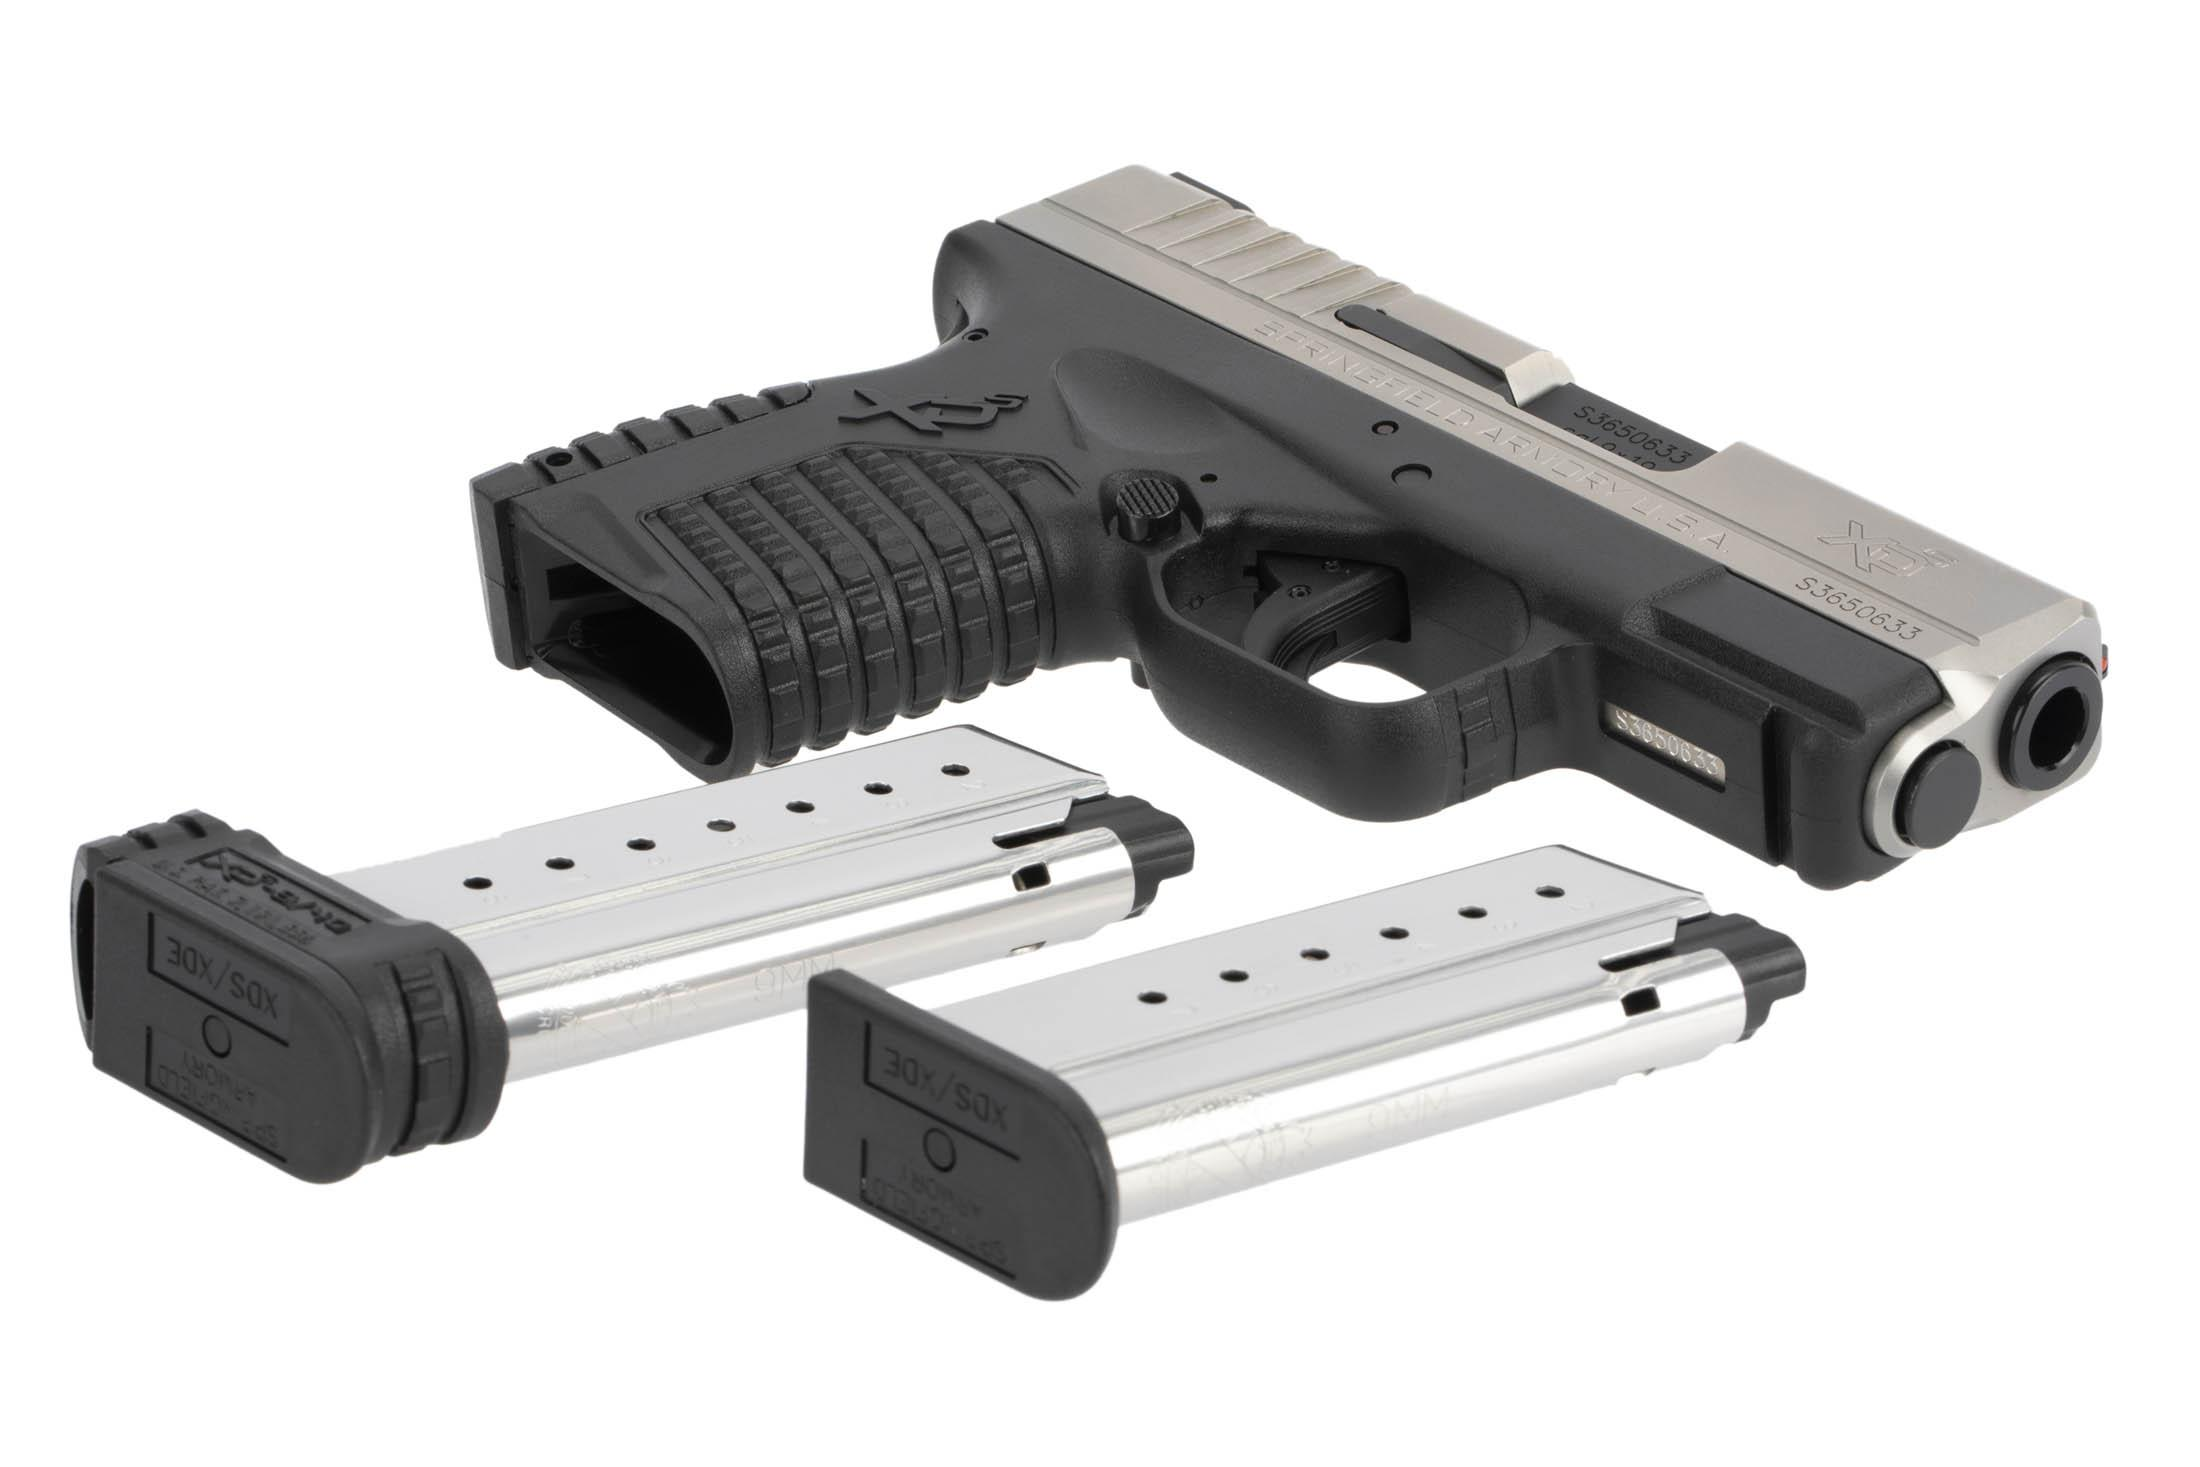 The Springfield Armory XD-S is a 9mm Sub Compact 8 round Handgun with two magazines